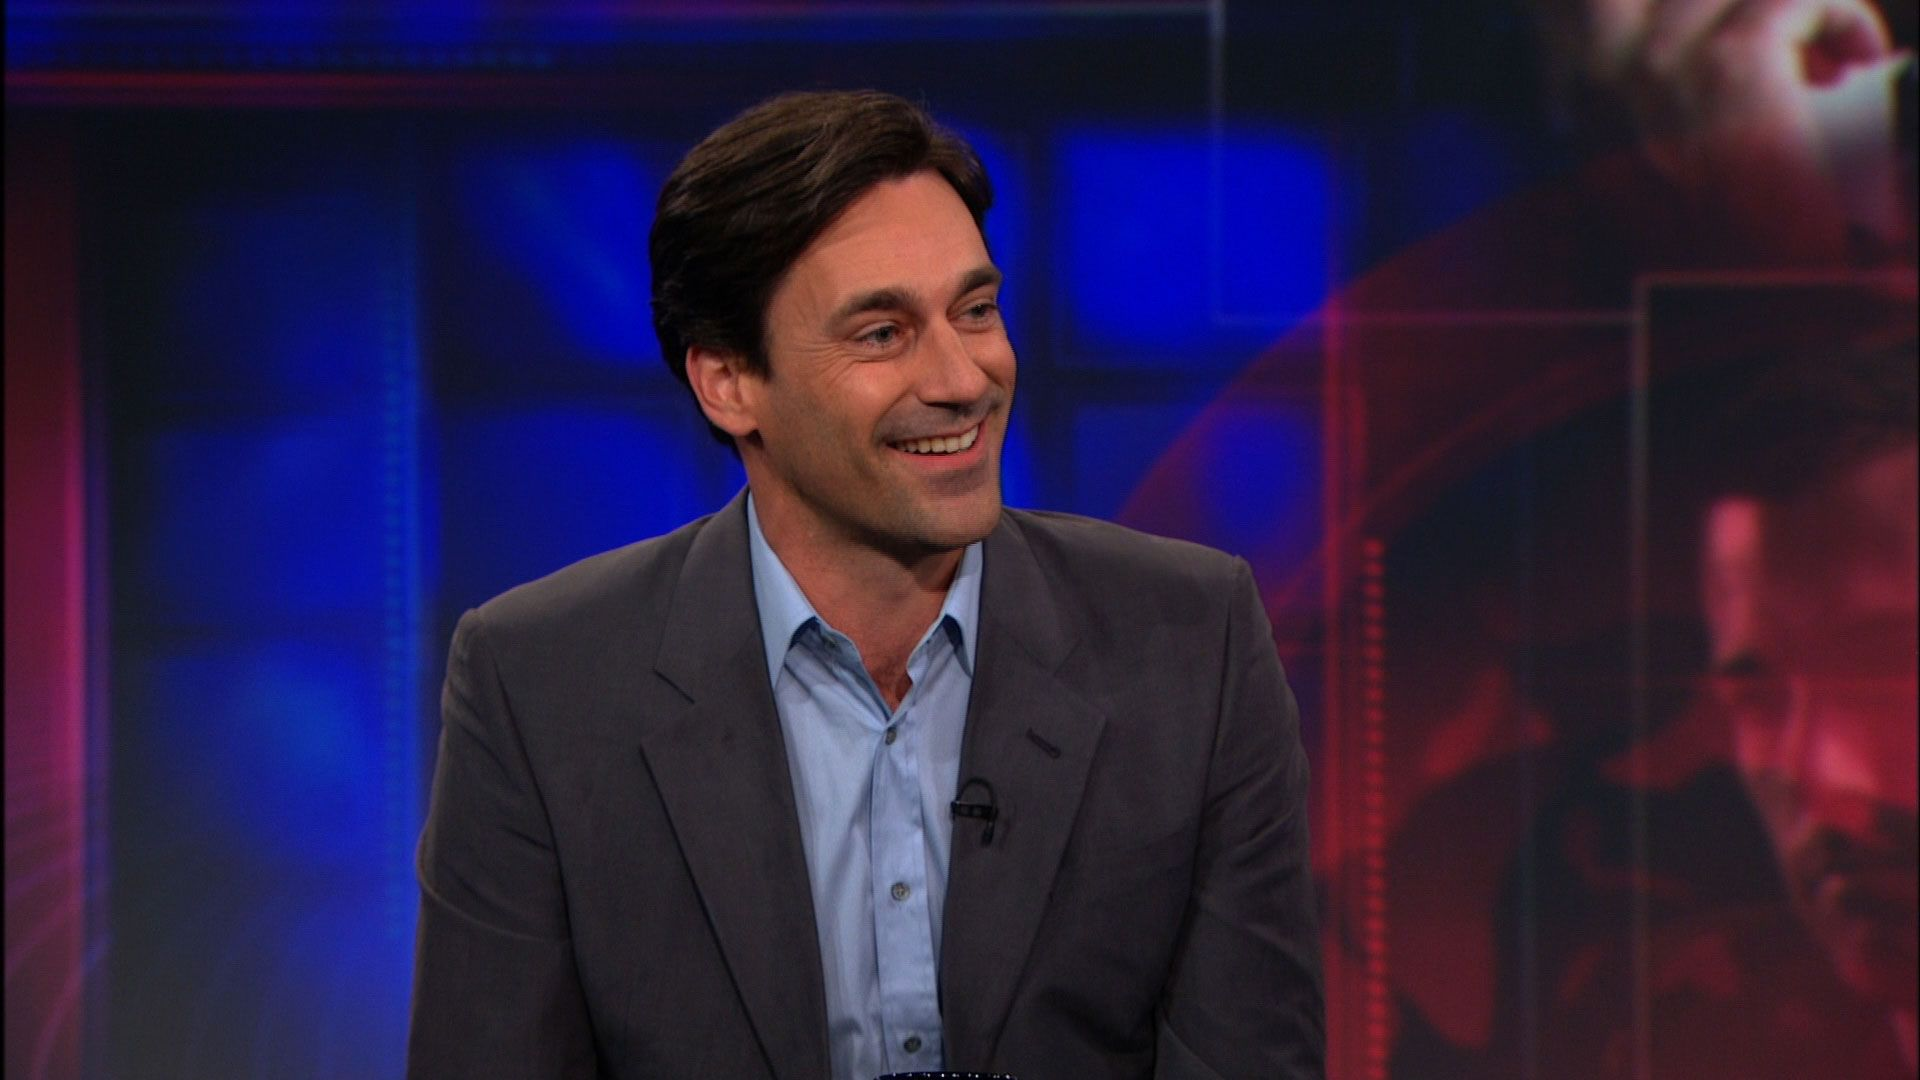 Jon hamm dating show clip